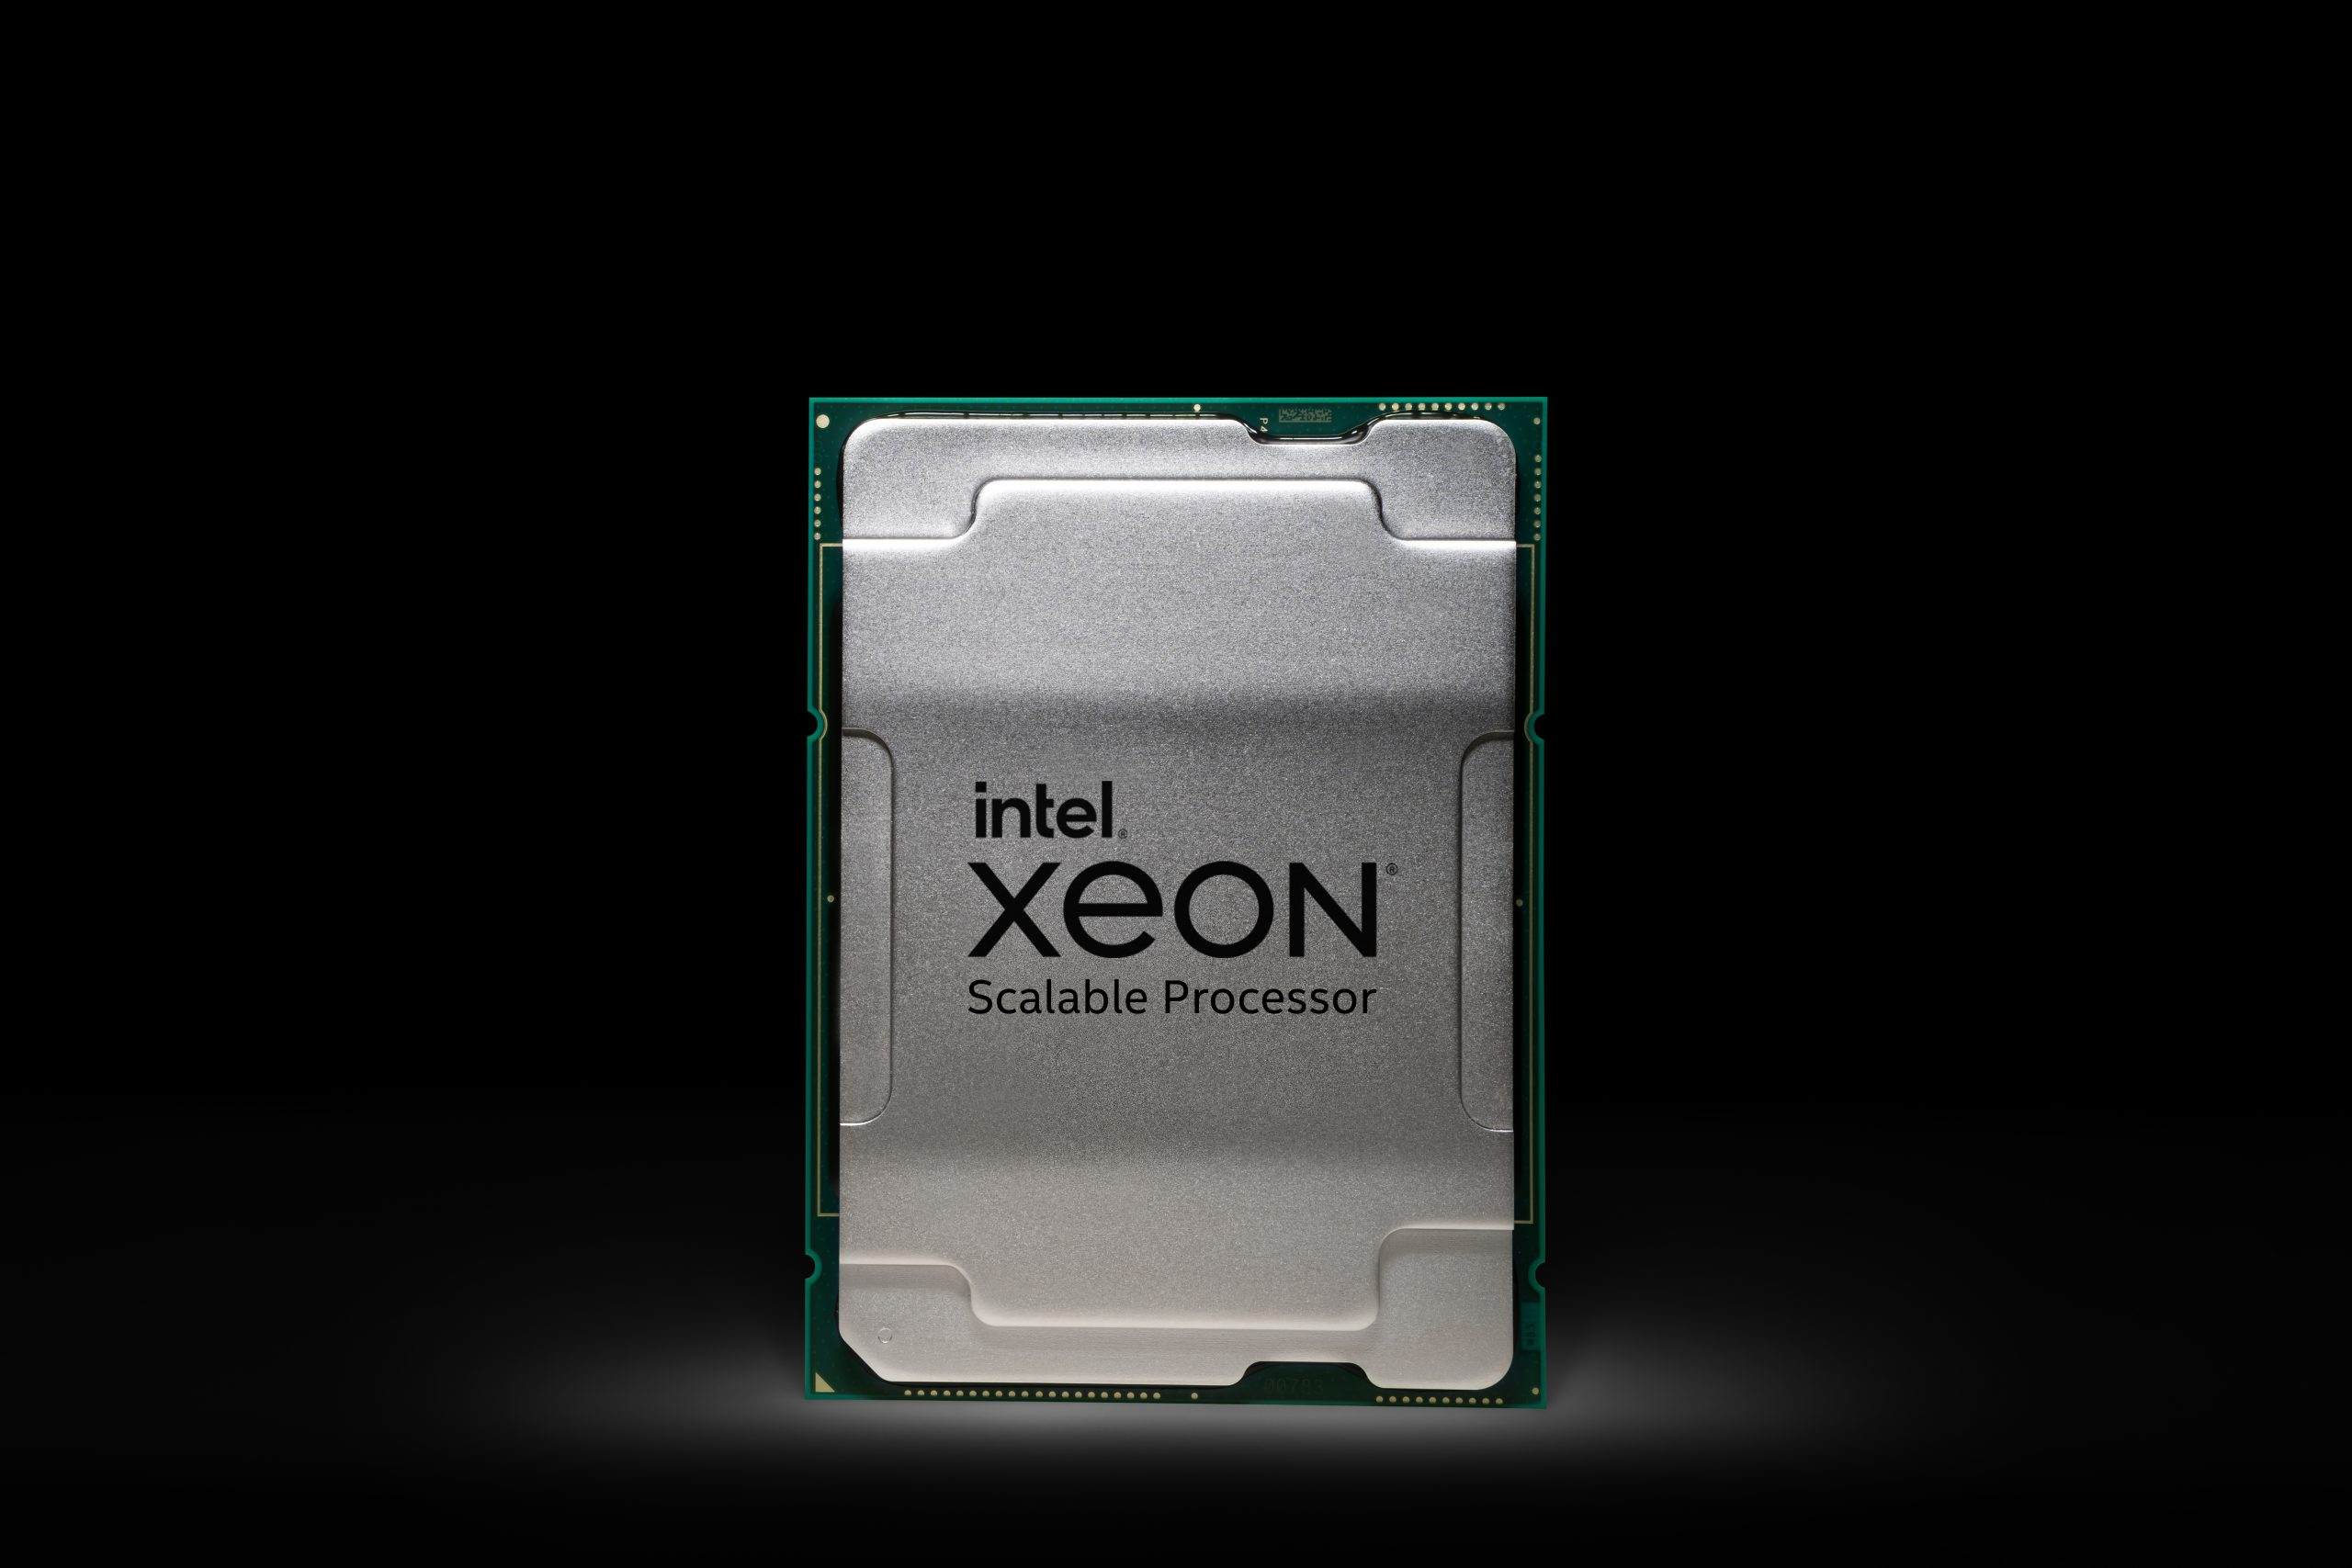 Intel 20 Core & 40 Thread Sapphire Rapids Xeon CPU Spotted & Tested